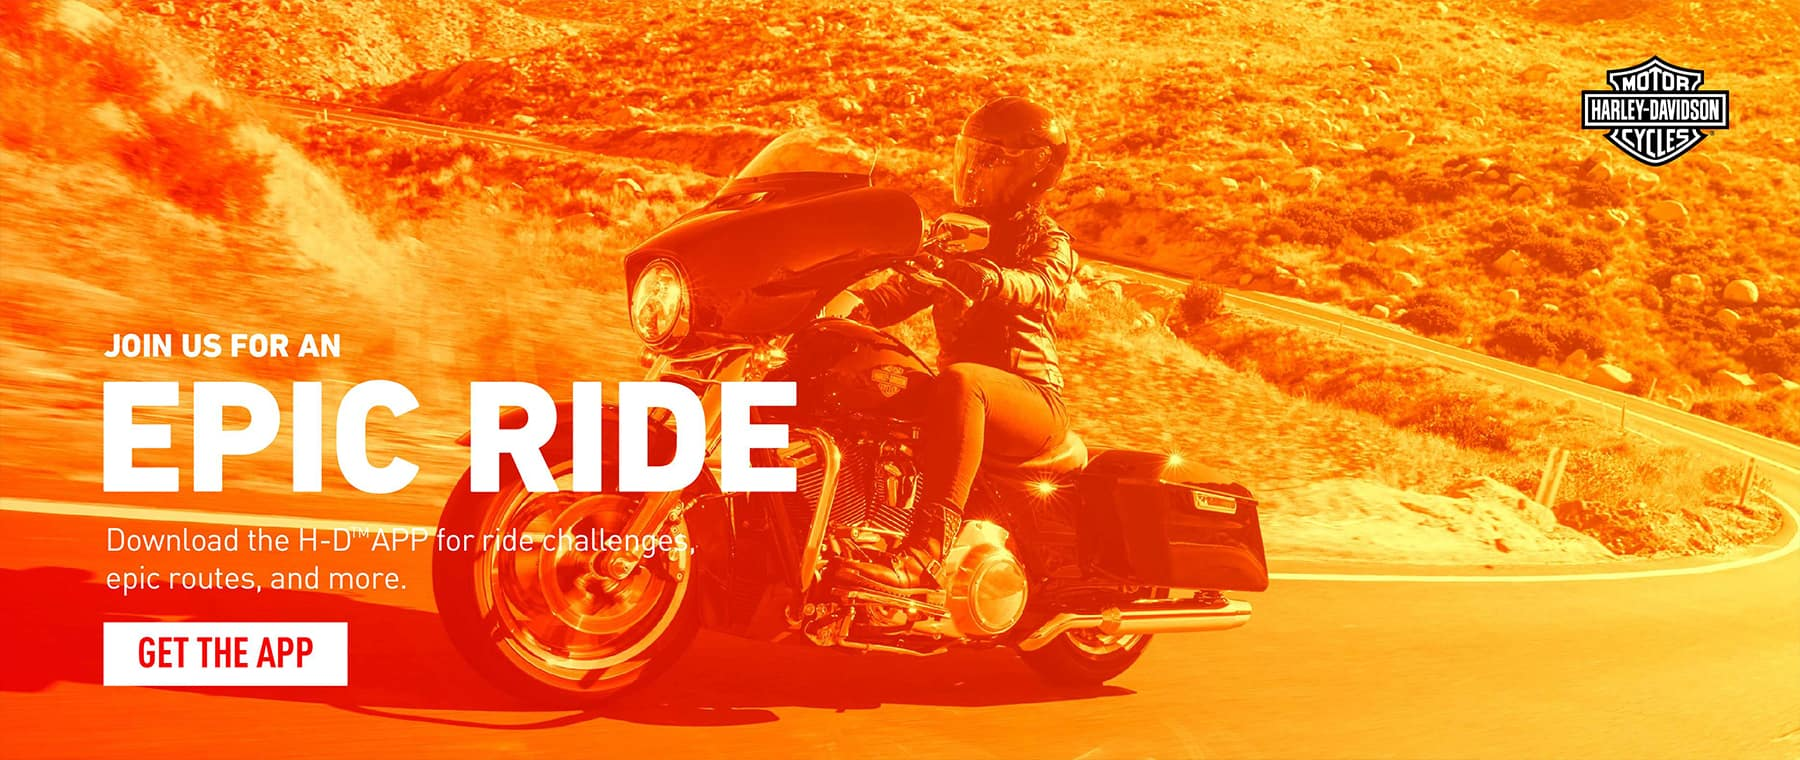 Epic Ride - Get the H-D App